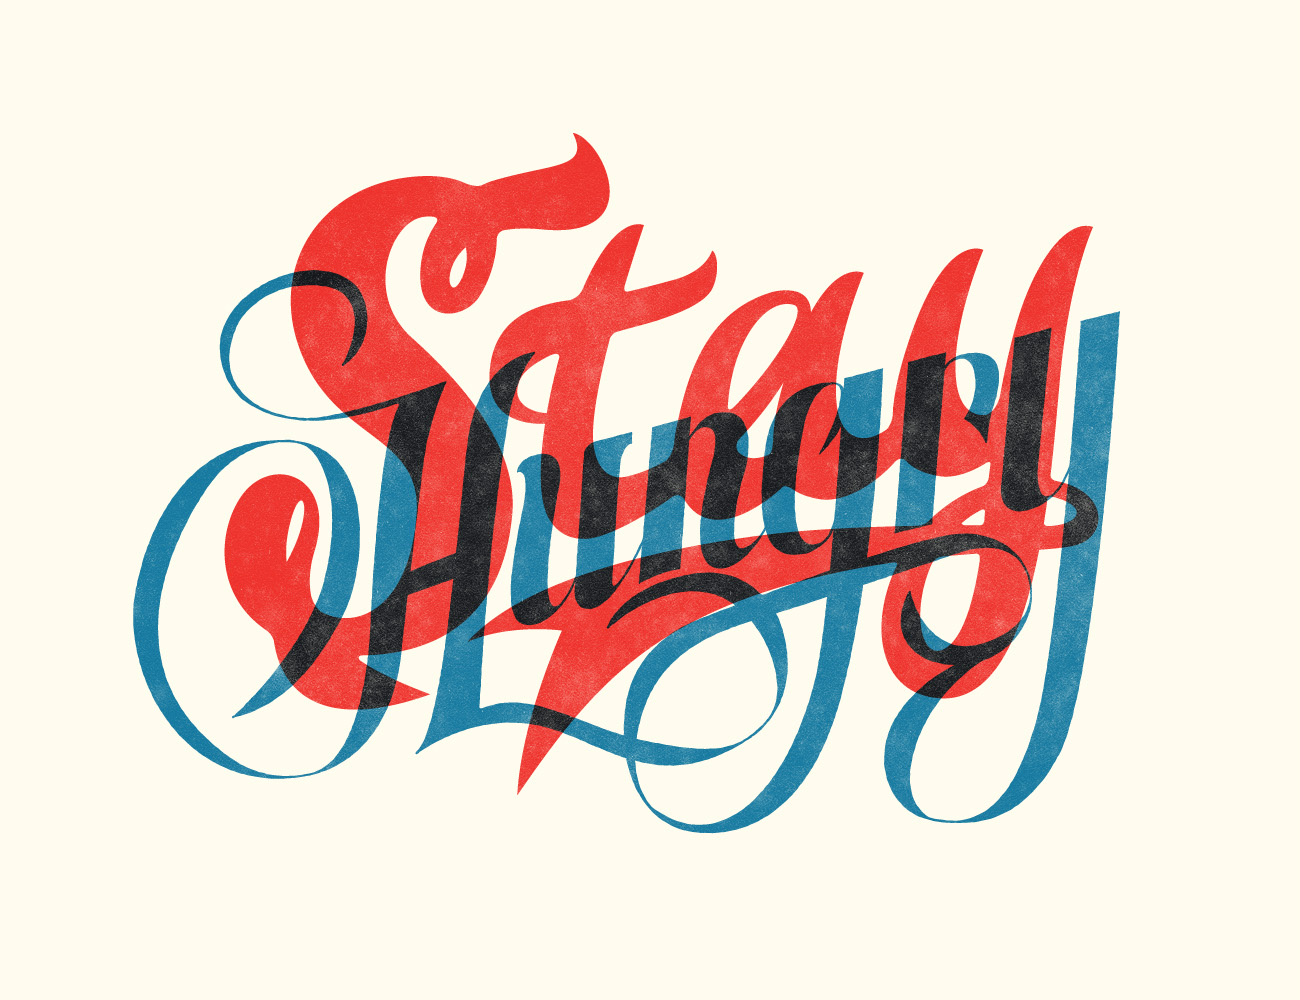 stayhungryfull1 40 Remarkable Examples Of Typography Design #8